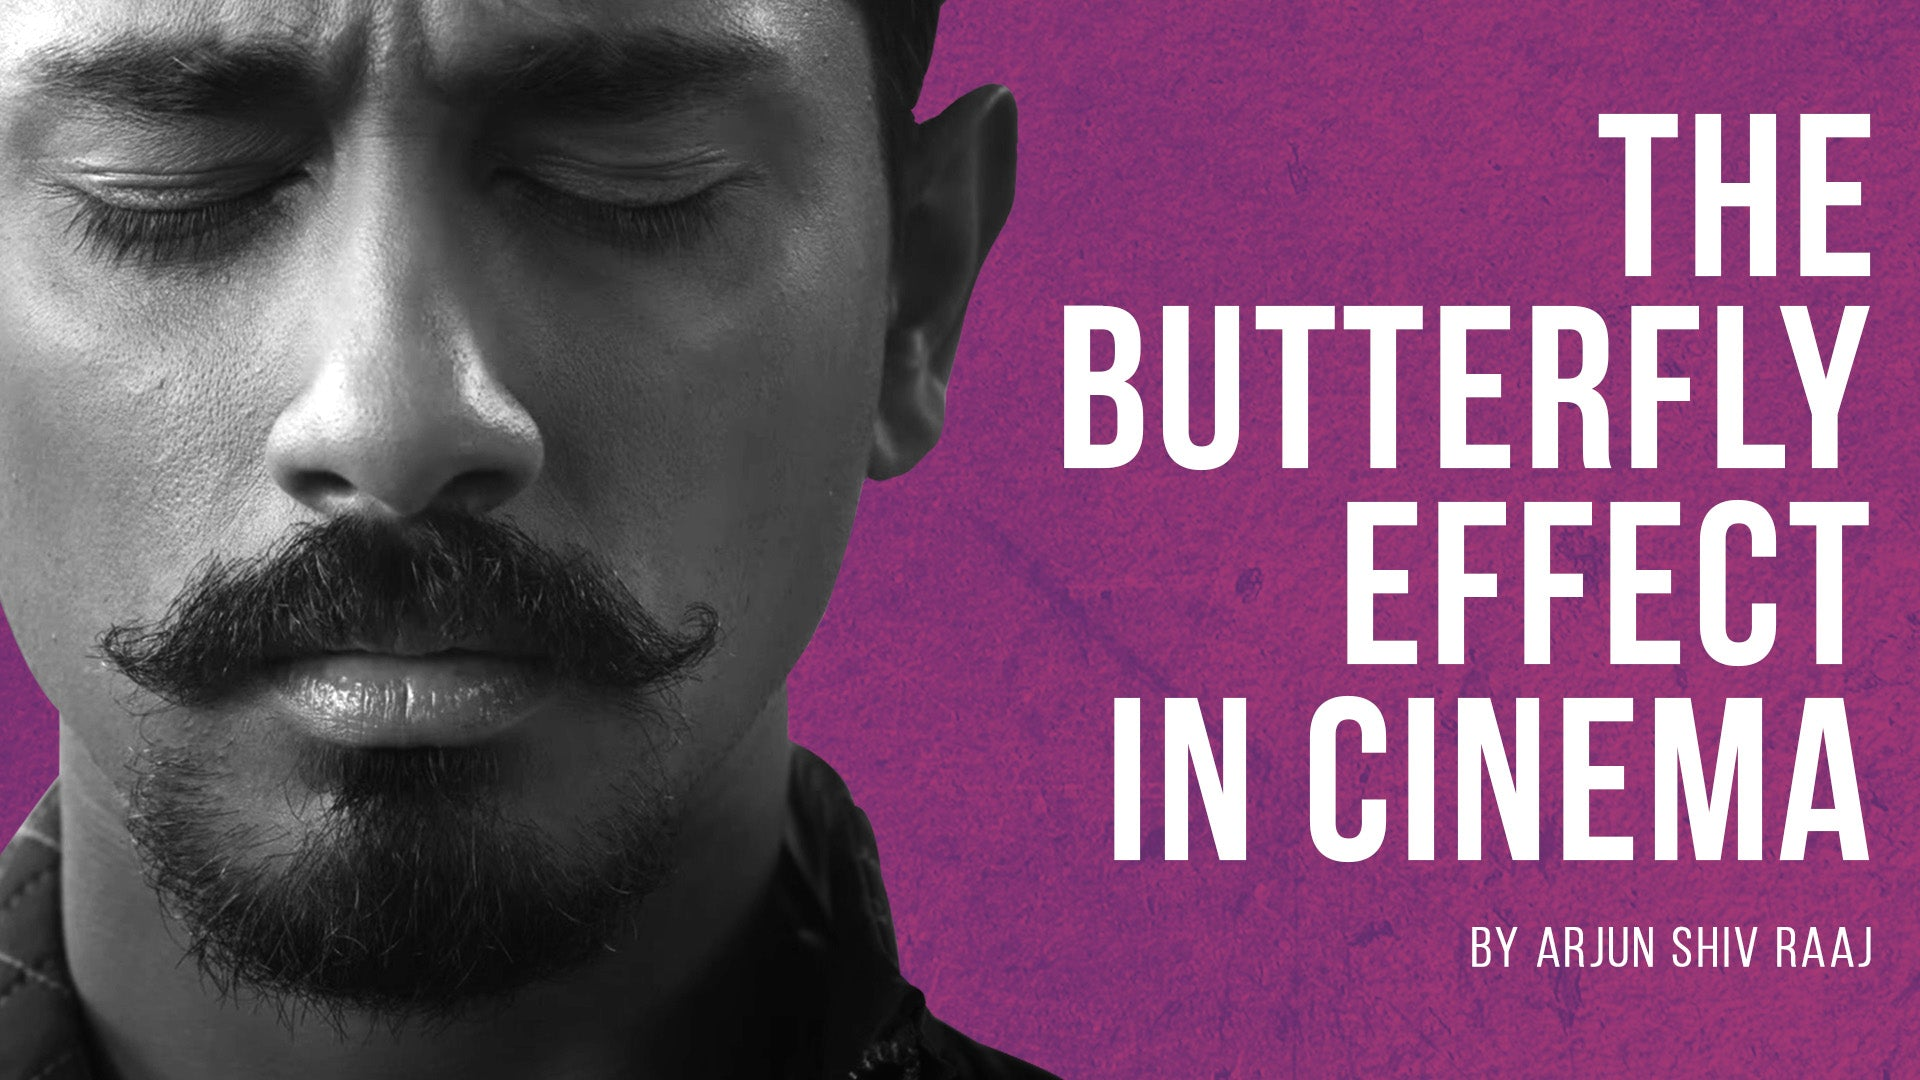 The Butterfly Effect in Cinema